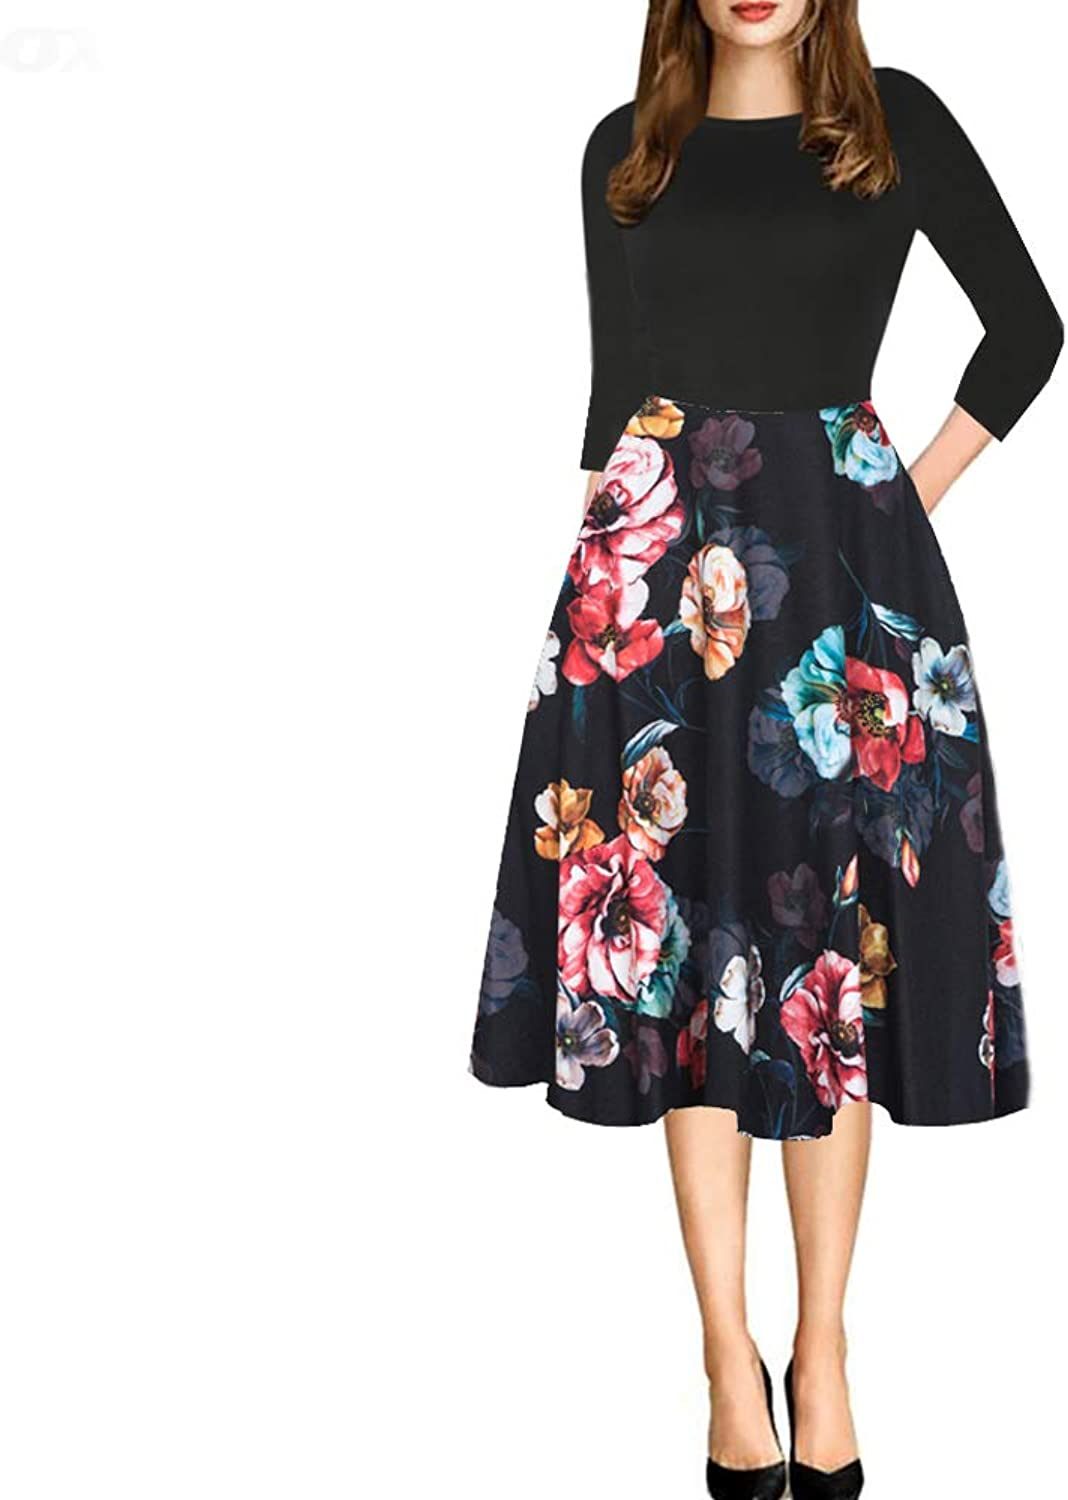 YISHIWEI Women's Pocket Vintage Patchwork Flowers Casual Party Flared Dress